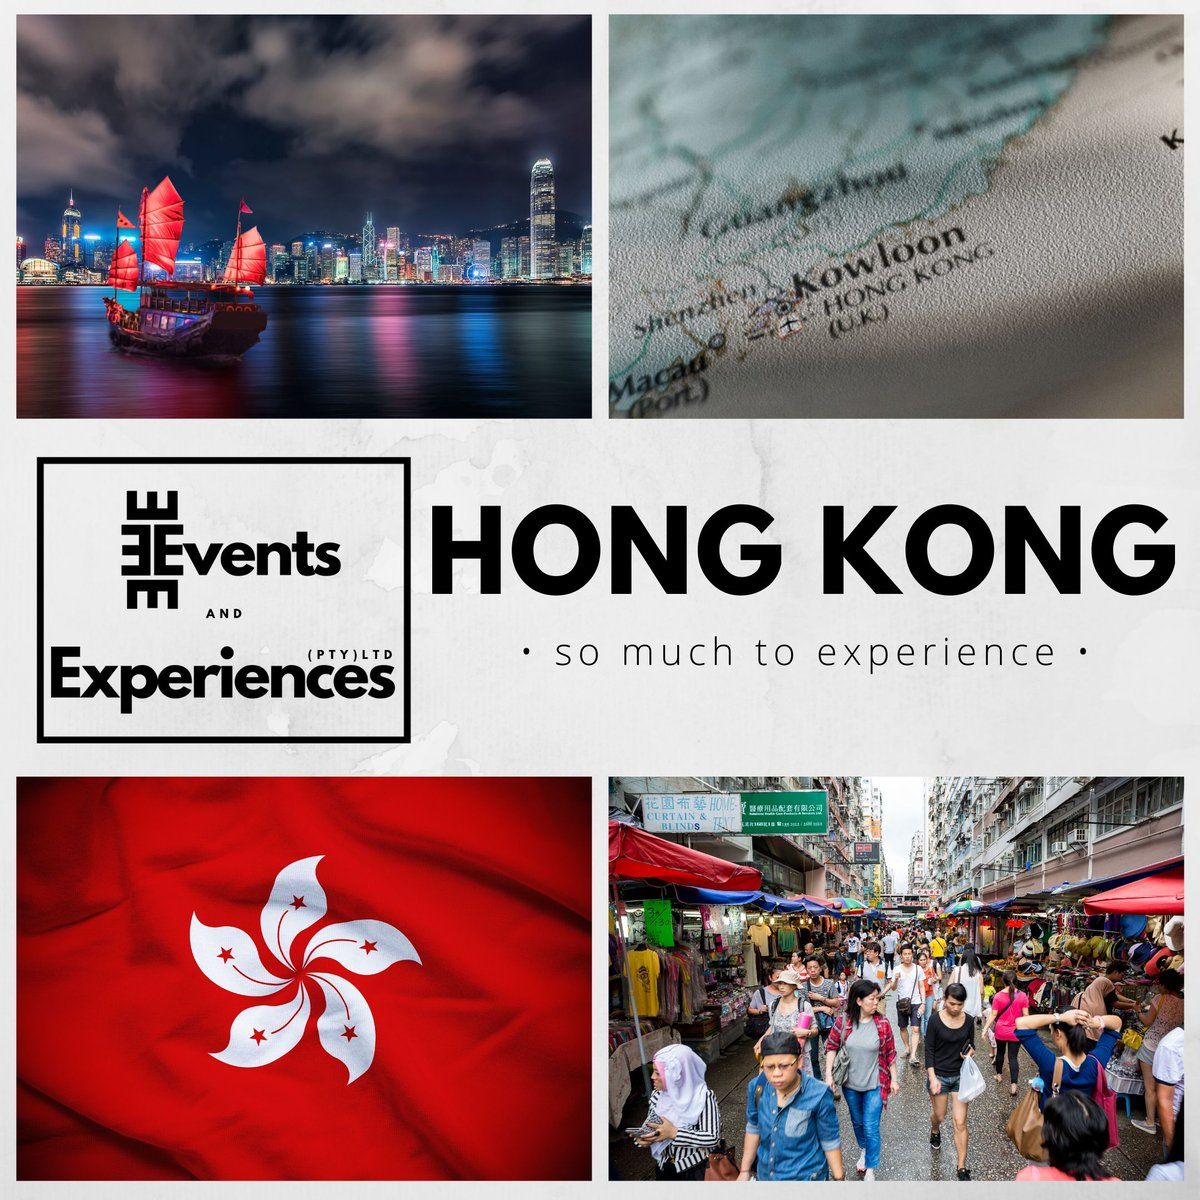 To see the Hong Kong harbor is a magical experience. We adore this city with everything it offers.  #HongKong #travel #incentives #adventure #experiences #value #culture #lovelife #events #conferences #grow #learn #expand #youarethereasonweexist https://t.co/W5sAfKApEG